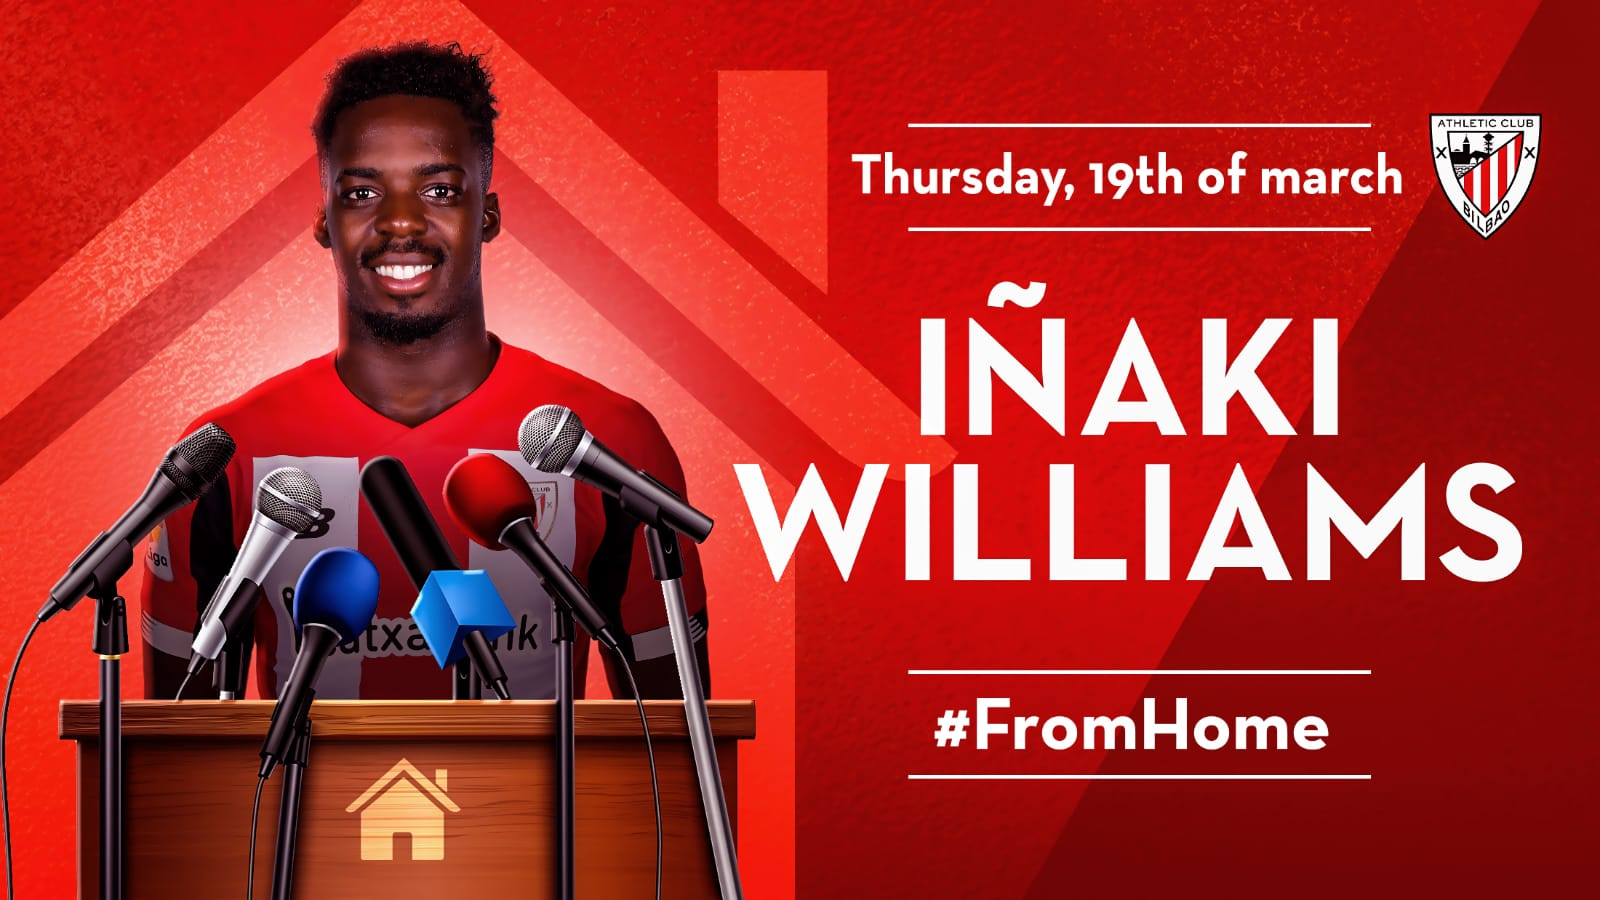 Williams answers #FromHome